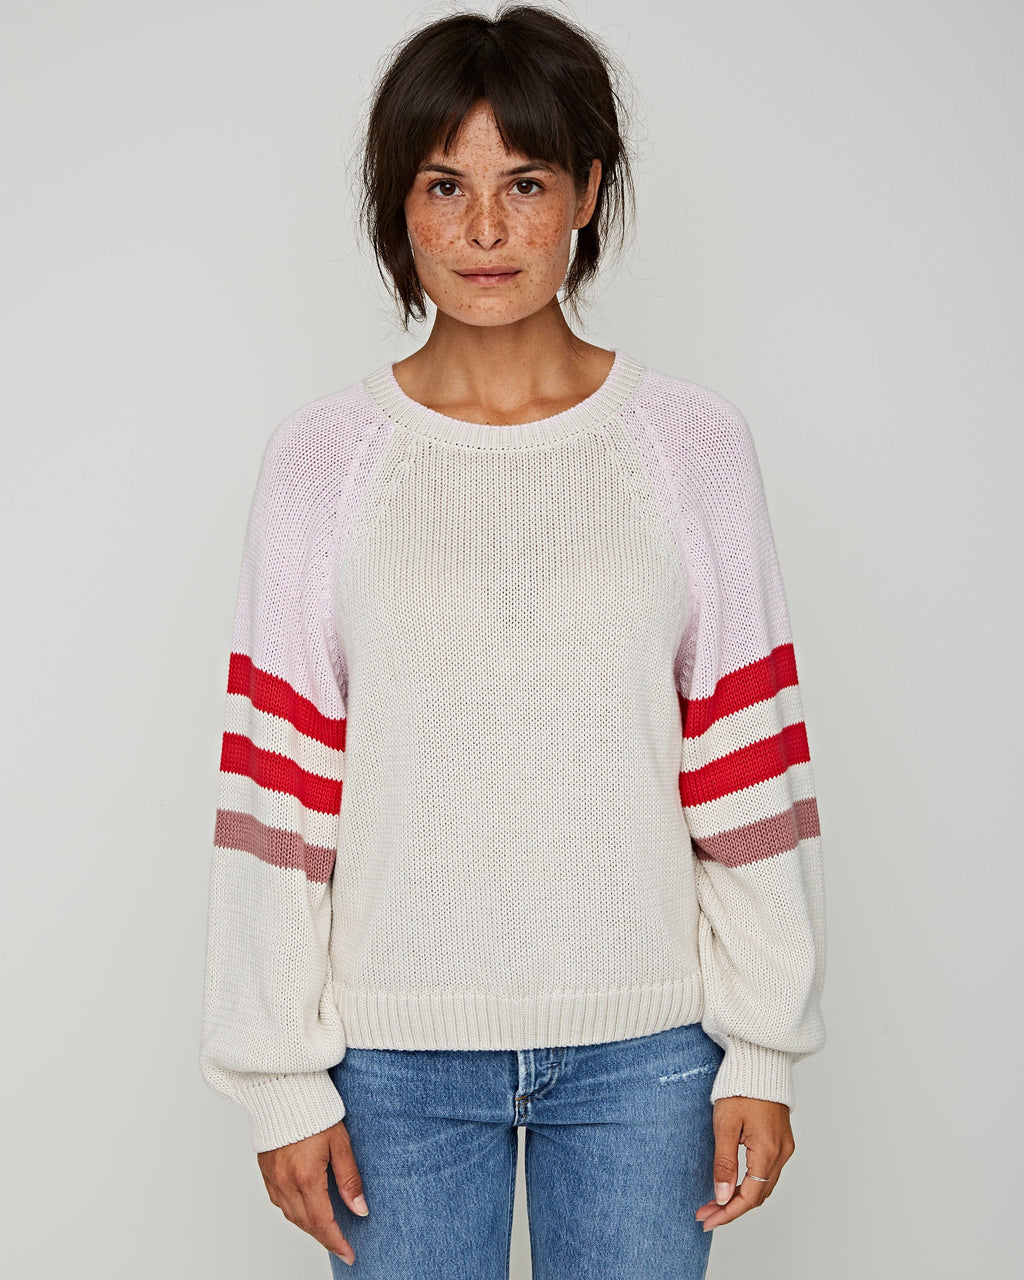 Après Soleil Cotton Sweater La Costa